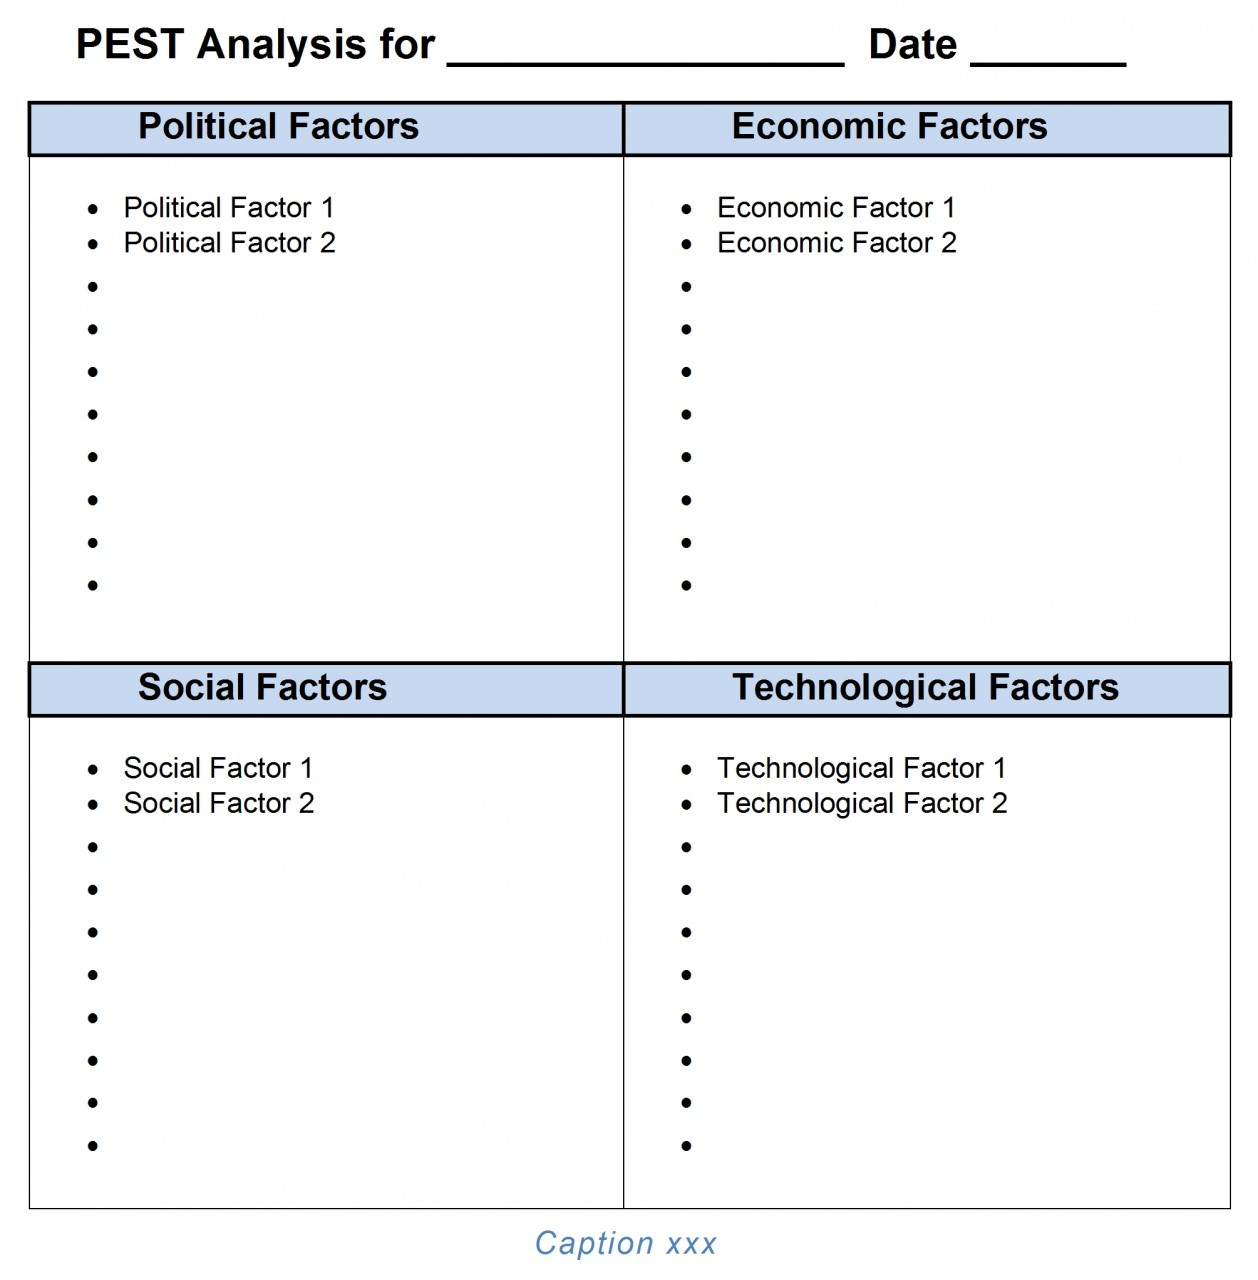 PEST Analysis Ms-Word Template In Pestel Analysis Template Word 2